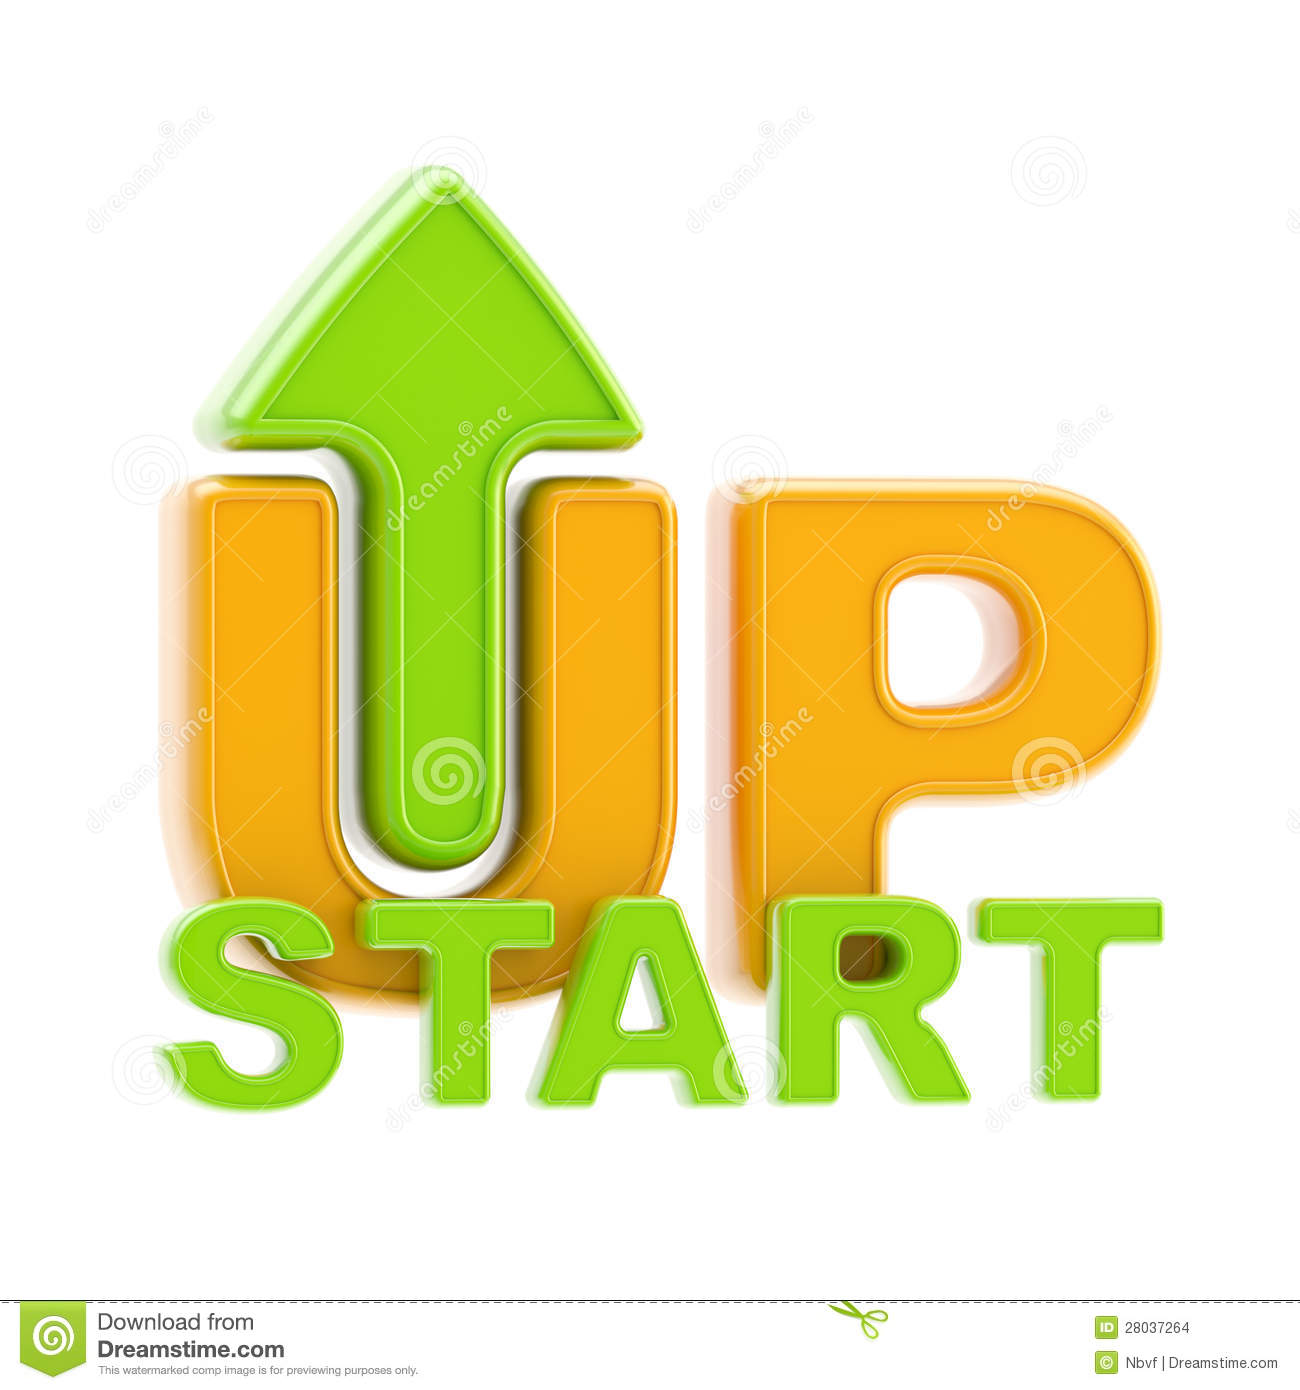 Startup Up Arrow Symbol Isolated Stock Images.